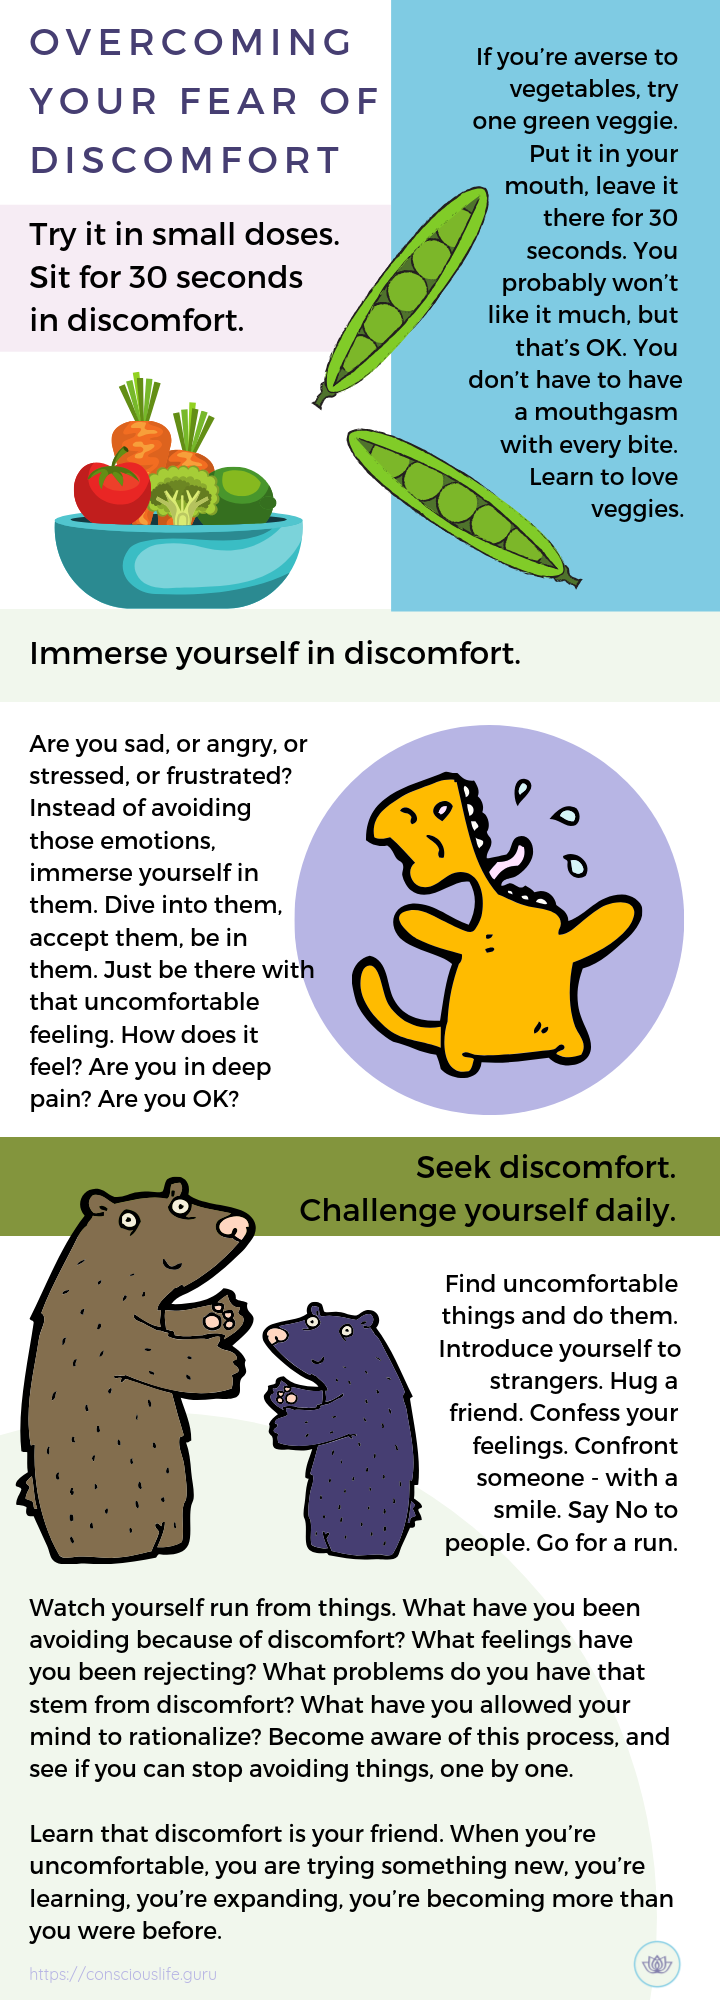 Infographic - how-to overcome discomfort - overcoming your fear of discomfort leo babauta and conscious life space